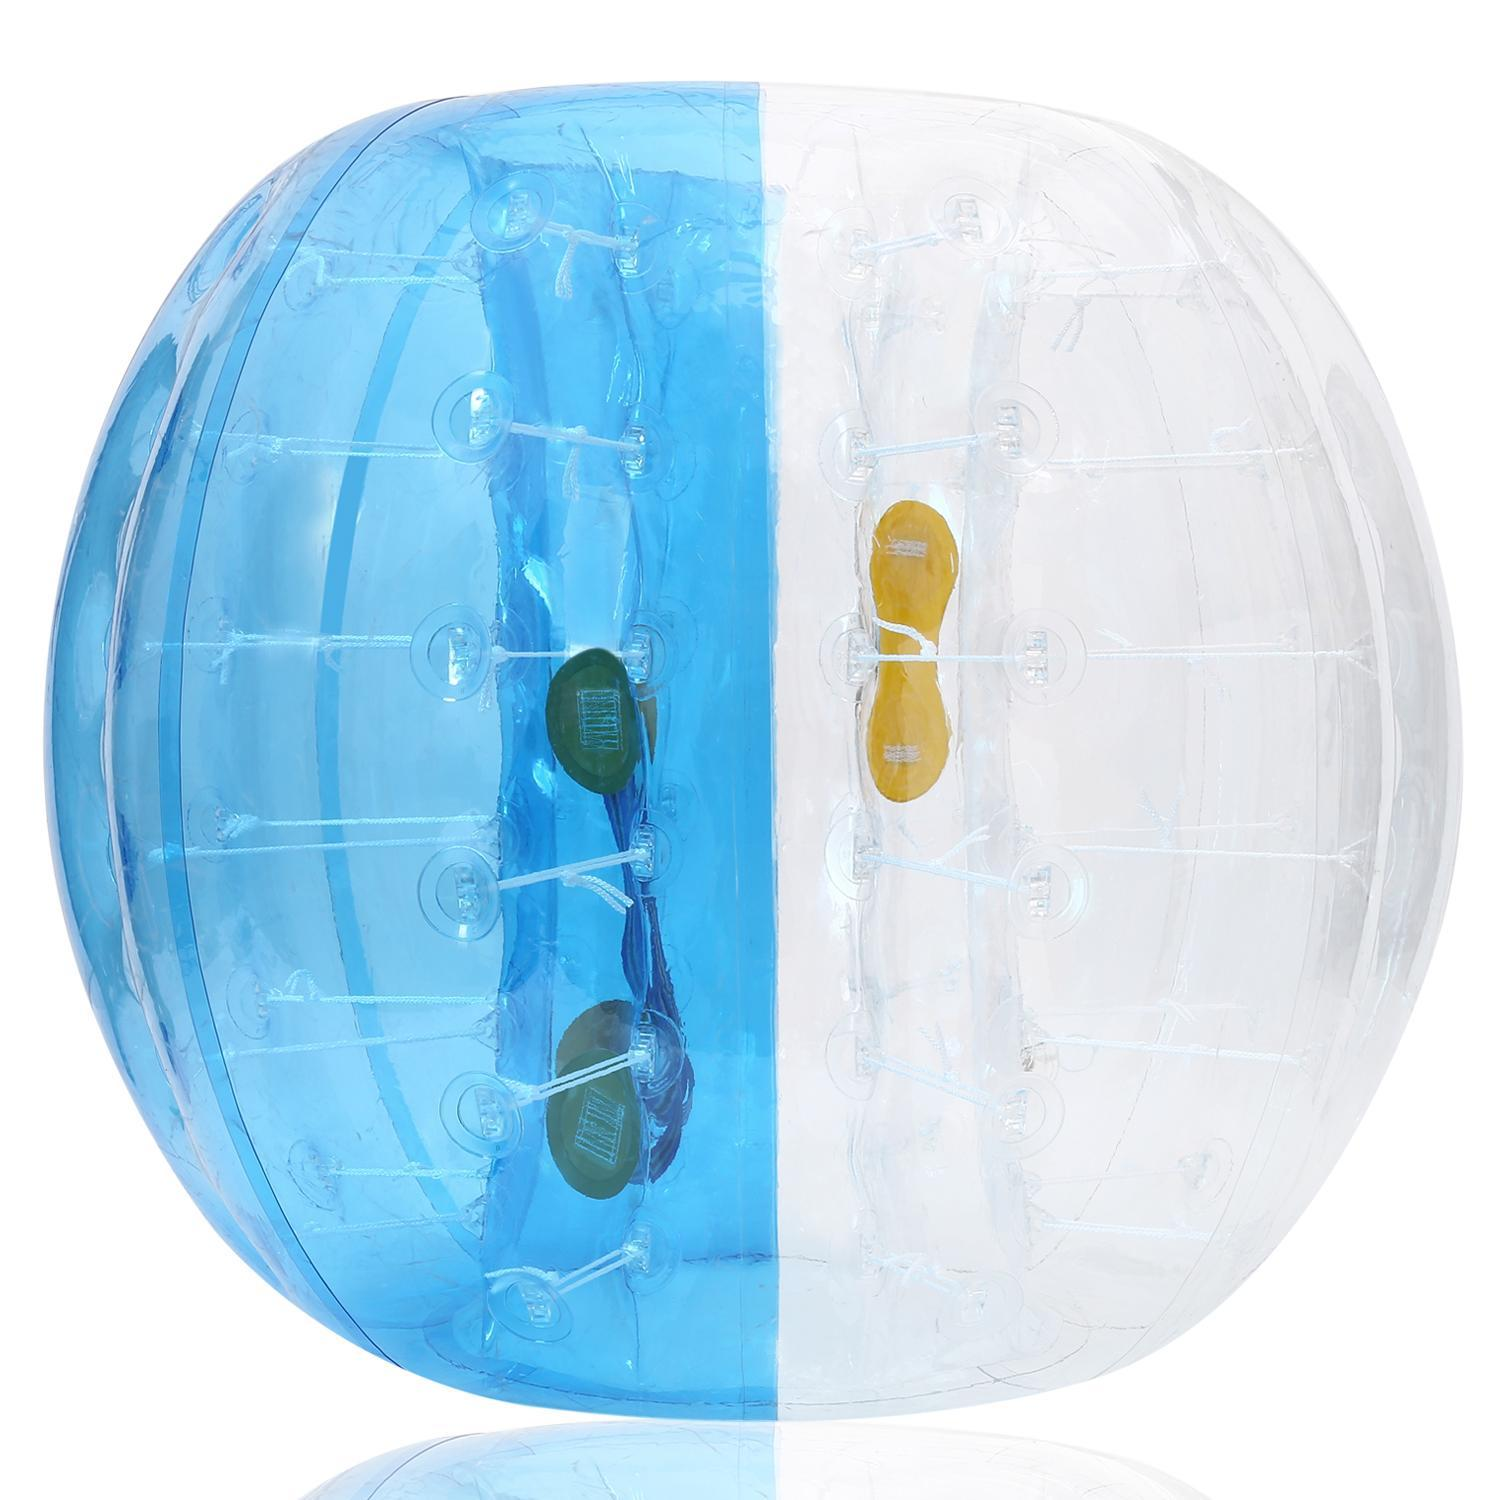 Holiday Special Hascon Bumper Ball Human Knocker Ball Bubble Soccer Football Adults and... by